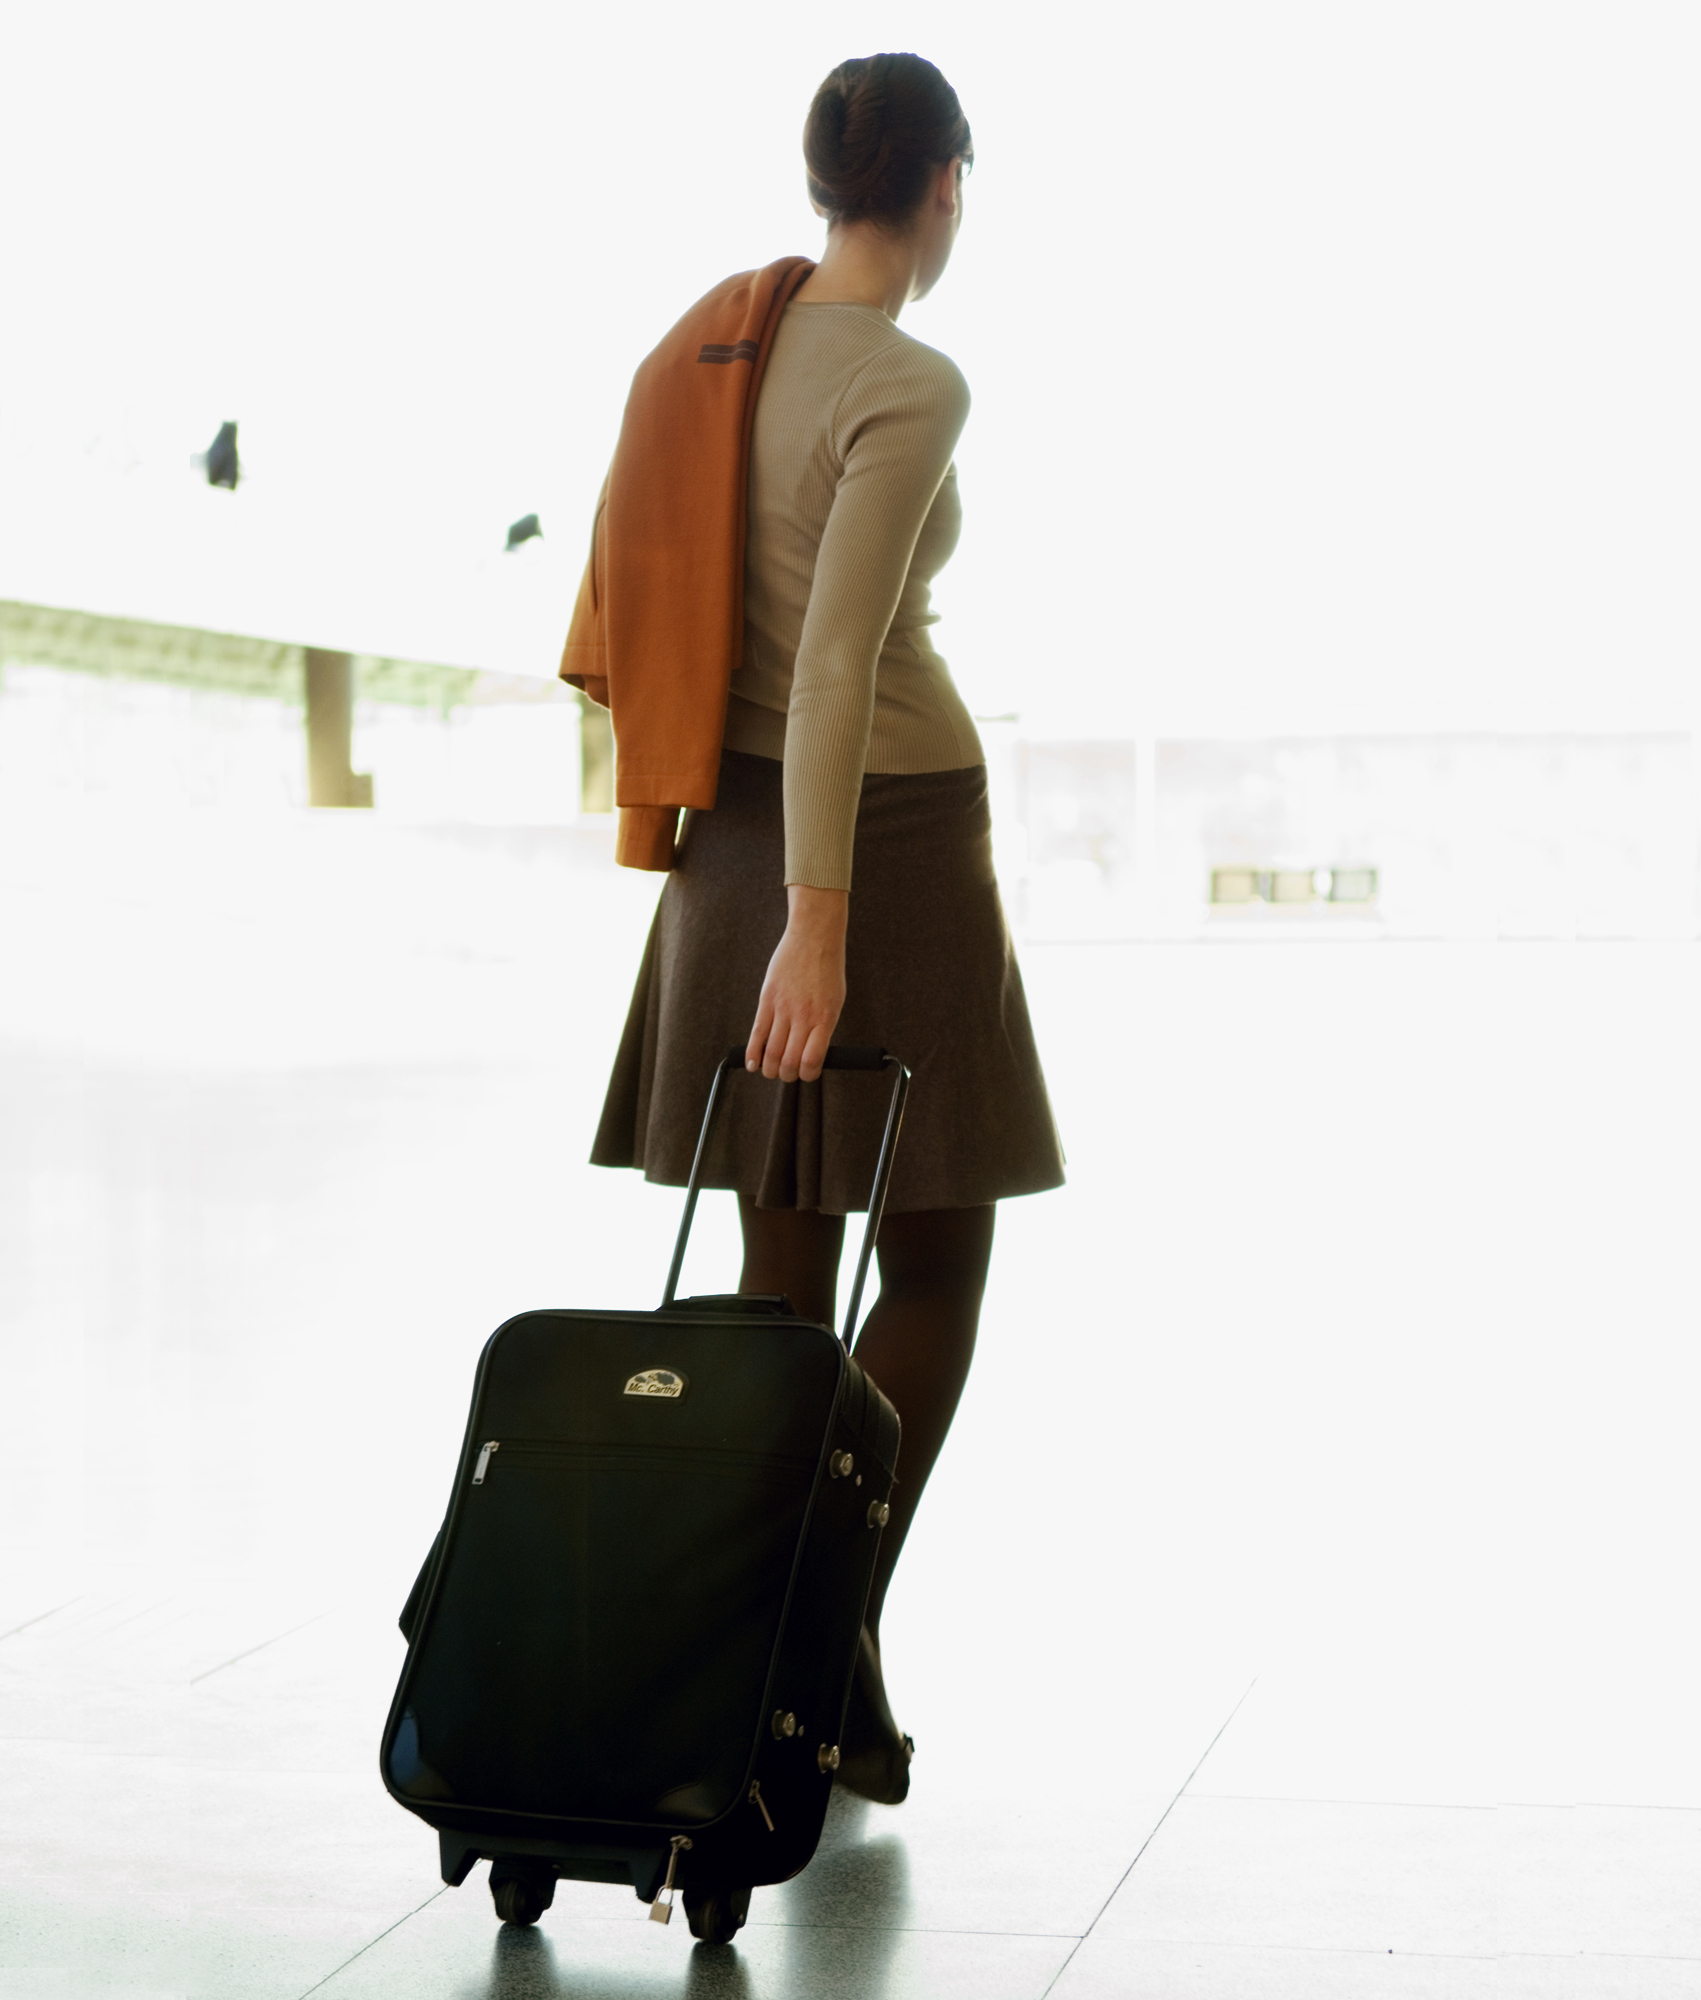 woman-suitcase-airport-behind